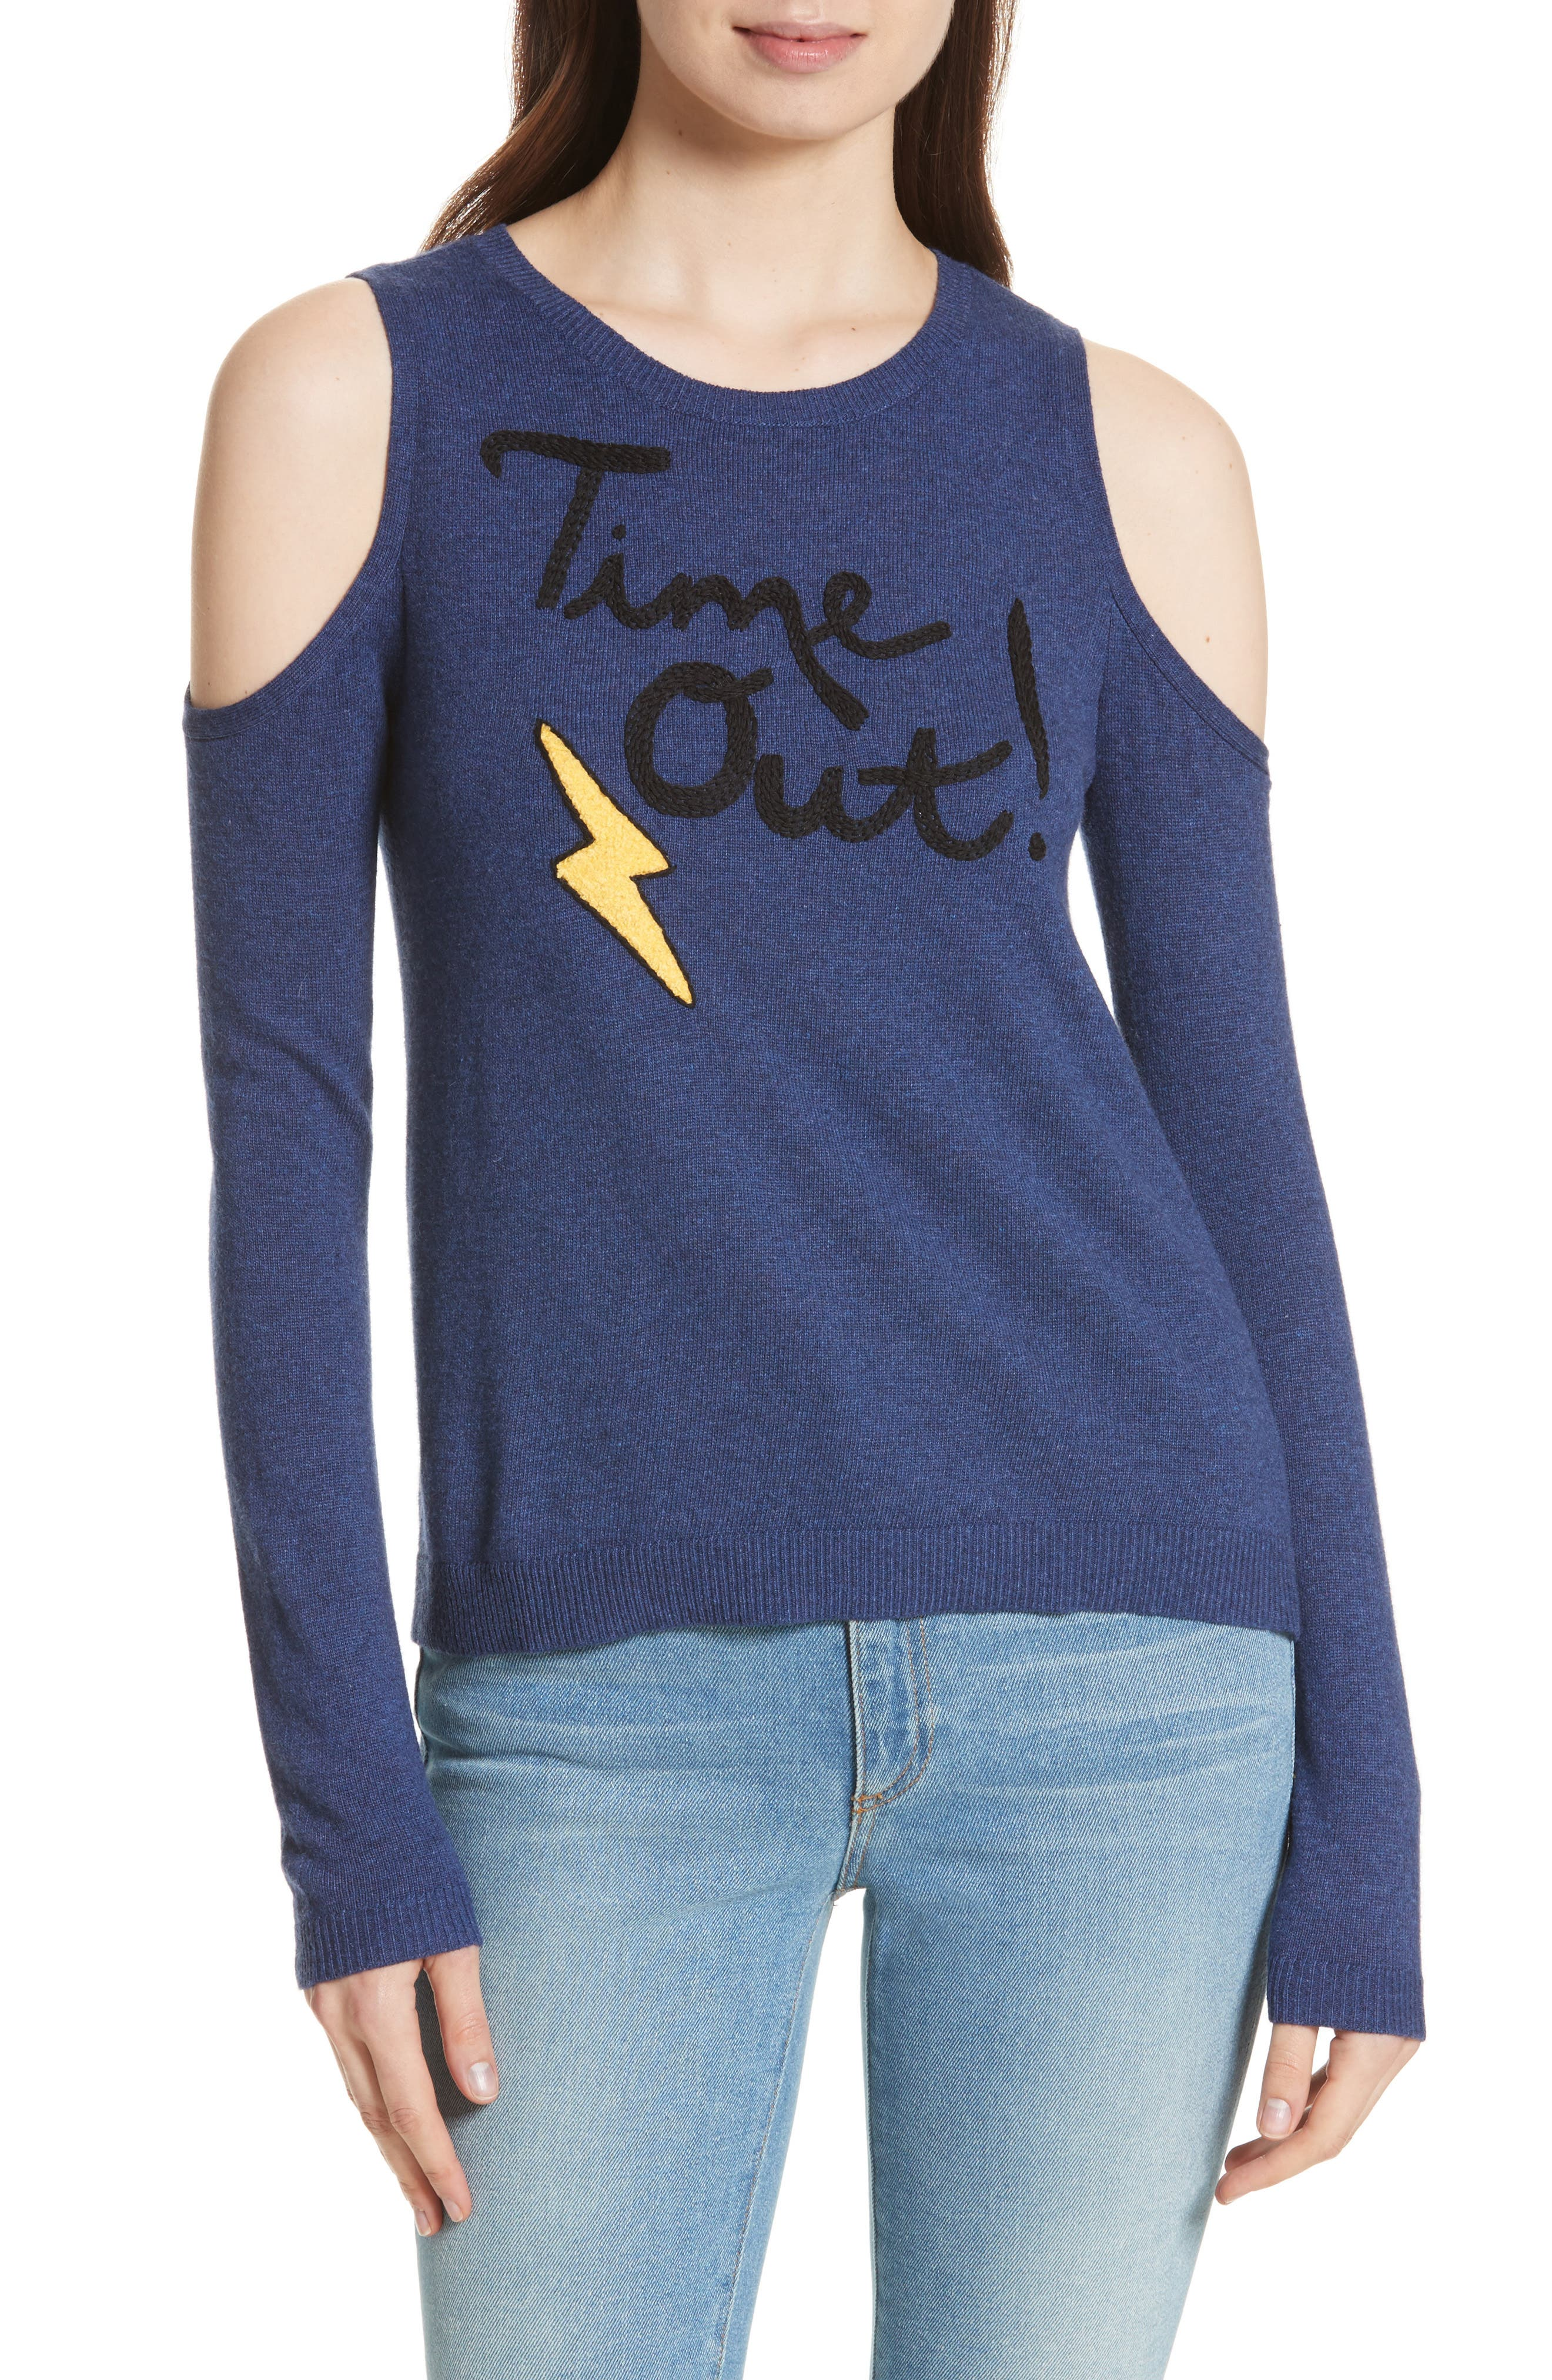 ALICE + OLIVIA Wade Time Out Cold Shoulder Sweater